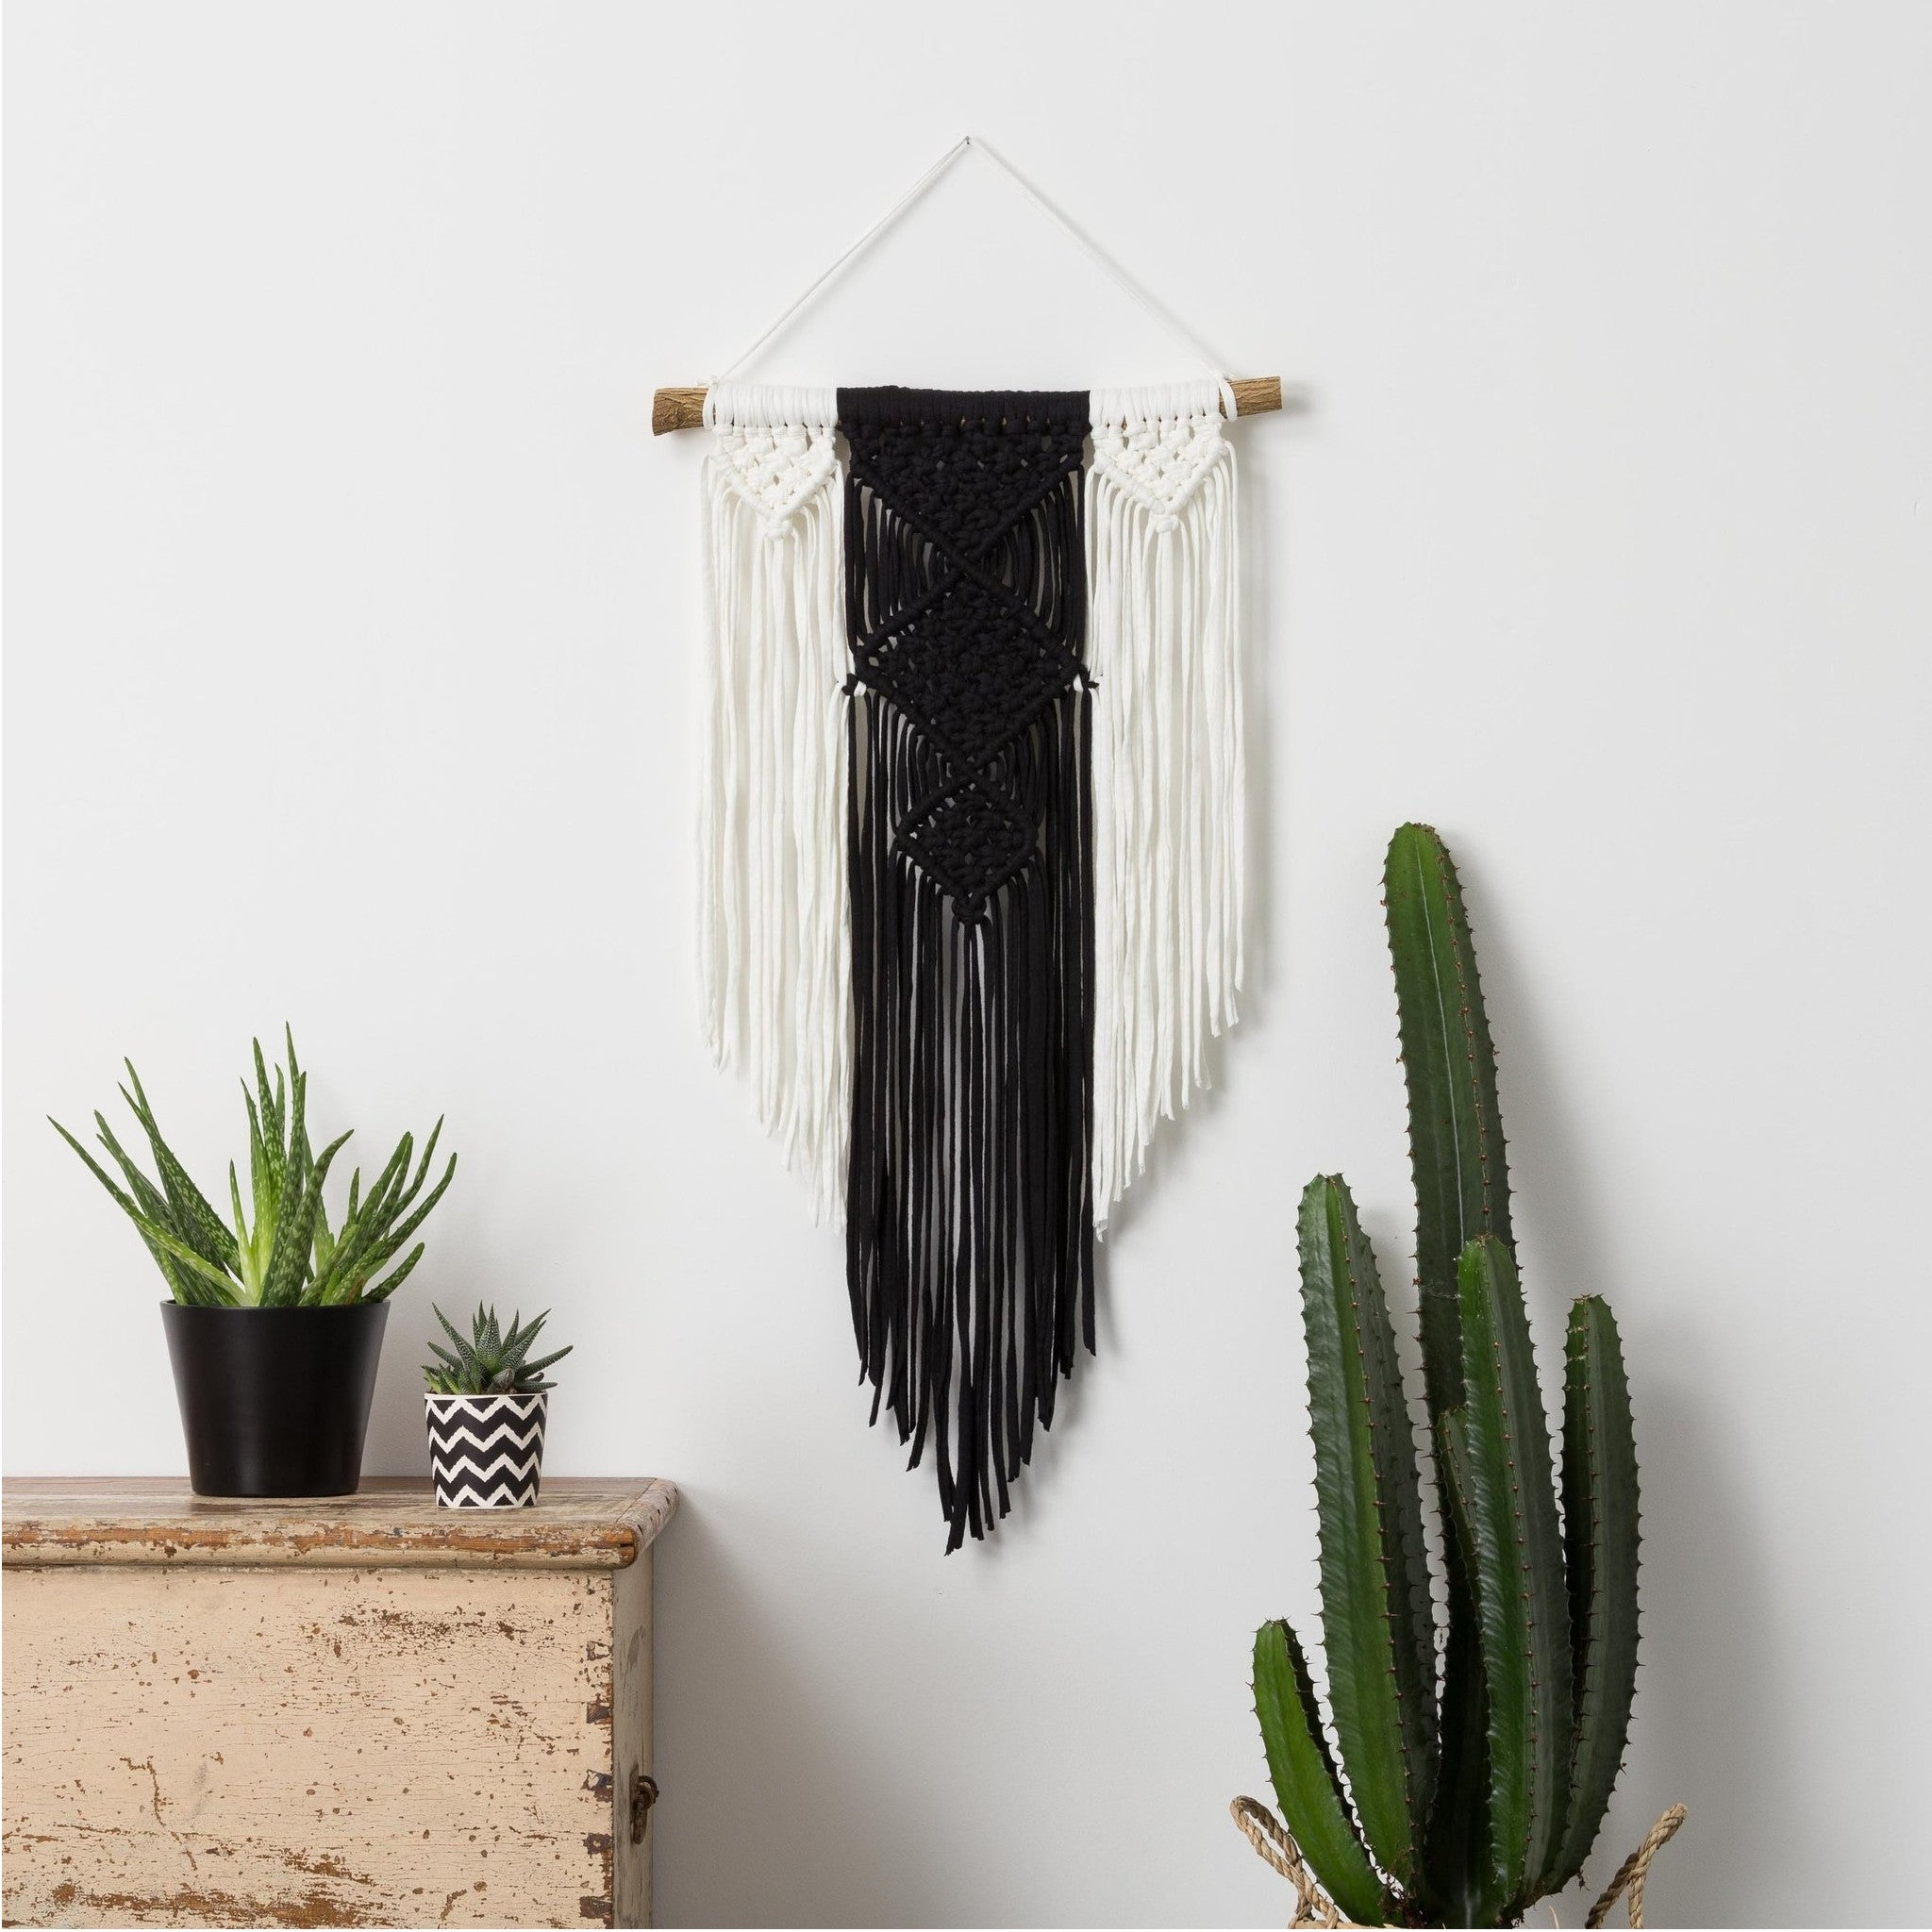 Monochrome wall hanging - Mara studio